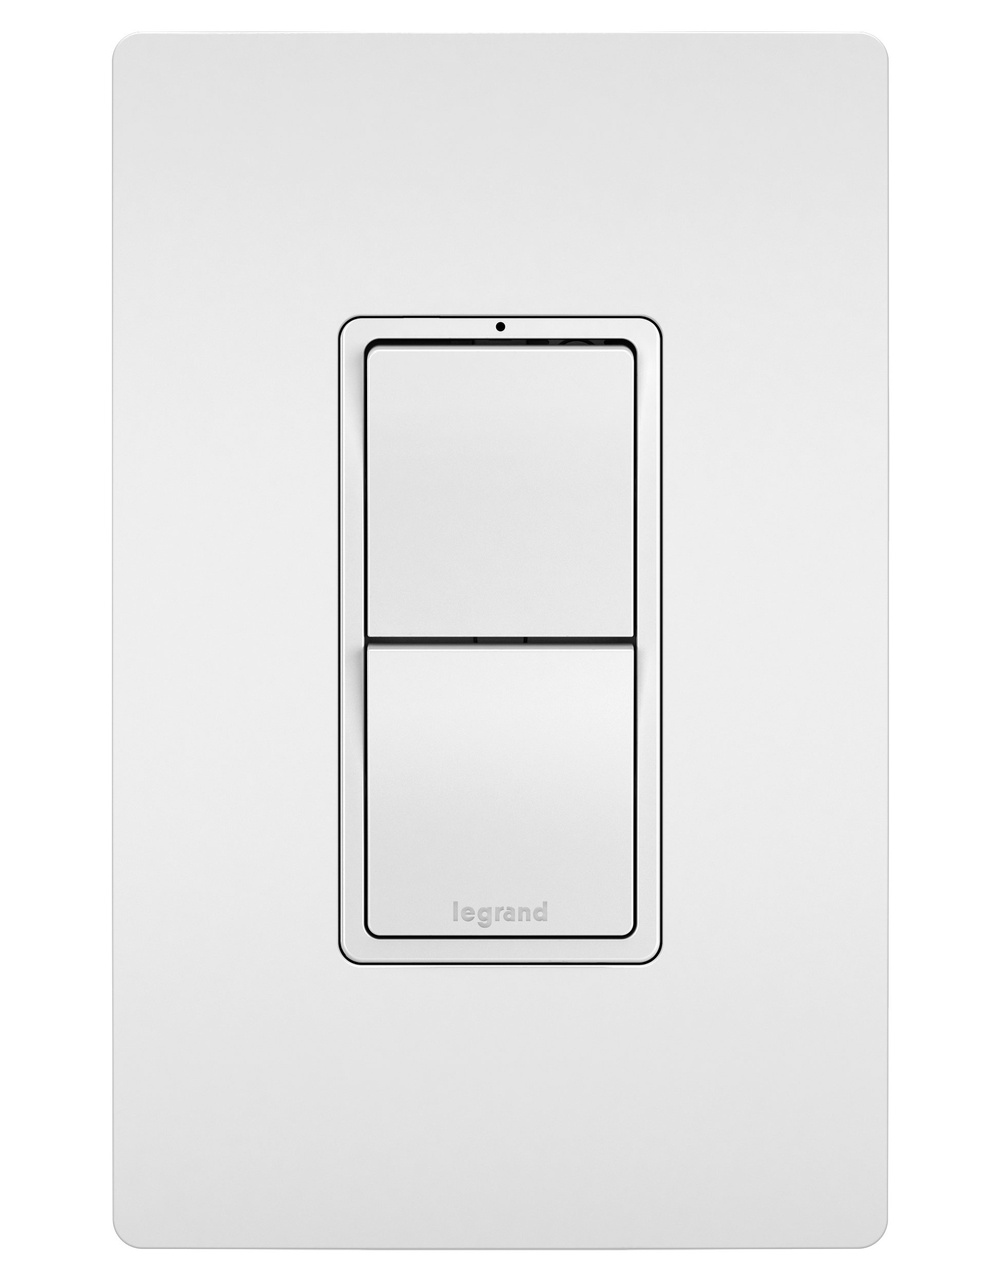 radiant® RCD33W Combo Switch, White | Legrand on mini 3 way switch, zwave 3 way switch, lighting 3 way switch, lutron 3 way switch, lamp 3 way switch, java 3 way switch, insteon 3 way switch, ge 3 way switch,